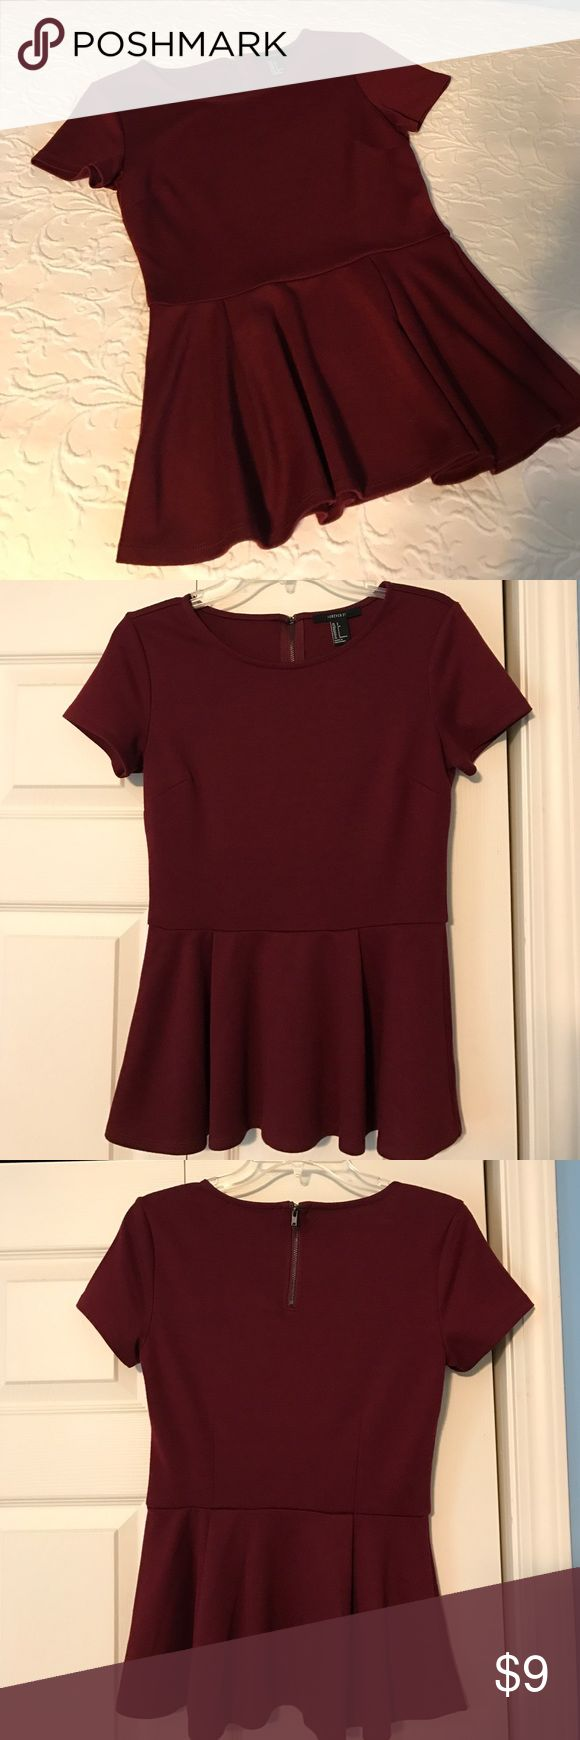 Burgundy Peplum Short-sleeve Top This burgundy peplum would look beautiful with jeans or a skirt. It's a quality made top and the peplum hits where it's most flattering. Has a zipper and clasp, which is rare to find on a top. Comfortable material and flattering silhouette. Forever 21 Tops